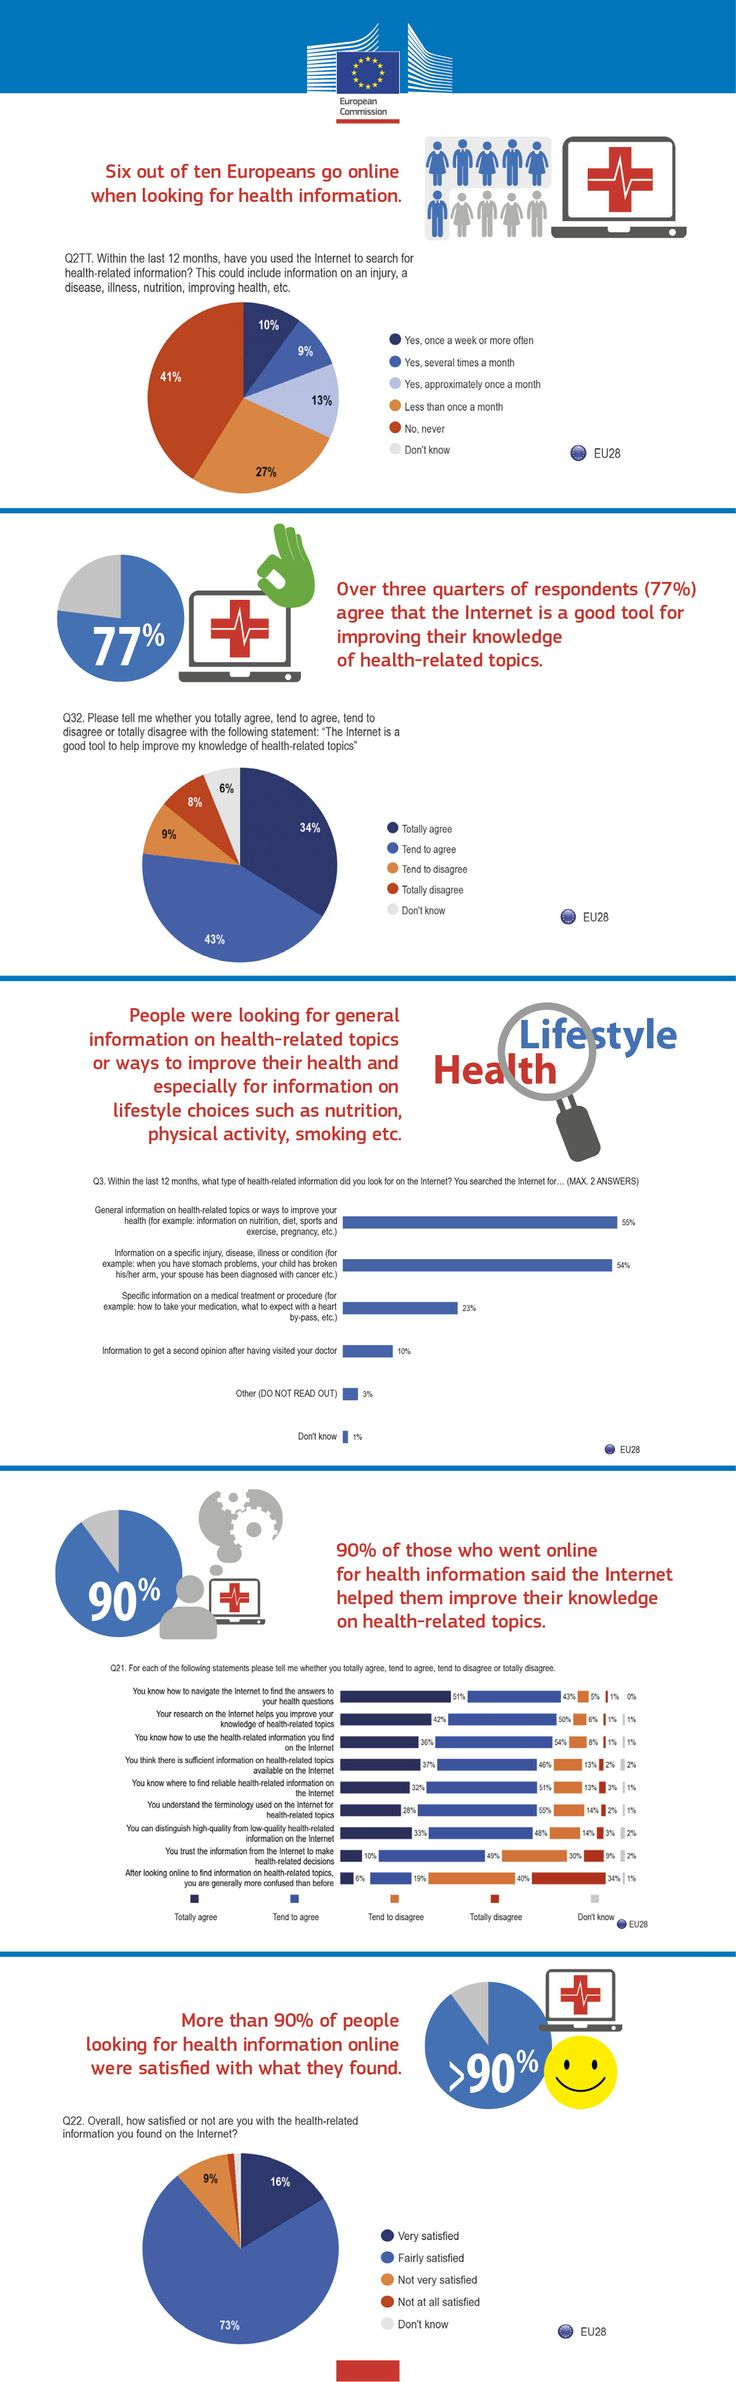 Europeans are hungry for online information about health and healthy lifestyles. Over 75% think the Internet is a good way of finding out more about health and 6 out of 10 Europeans go online when looking for health information. It's is based on the Flash Eurobarometer from September 2014 during which more than 26 thousand people were interviewed. #eHealth #healthliteracy https://ec.europa.eu/digital-agenda/en/news/europeans-becoming-enthusiastic-users-online-health-information